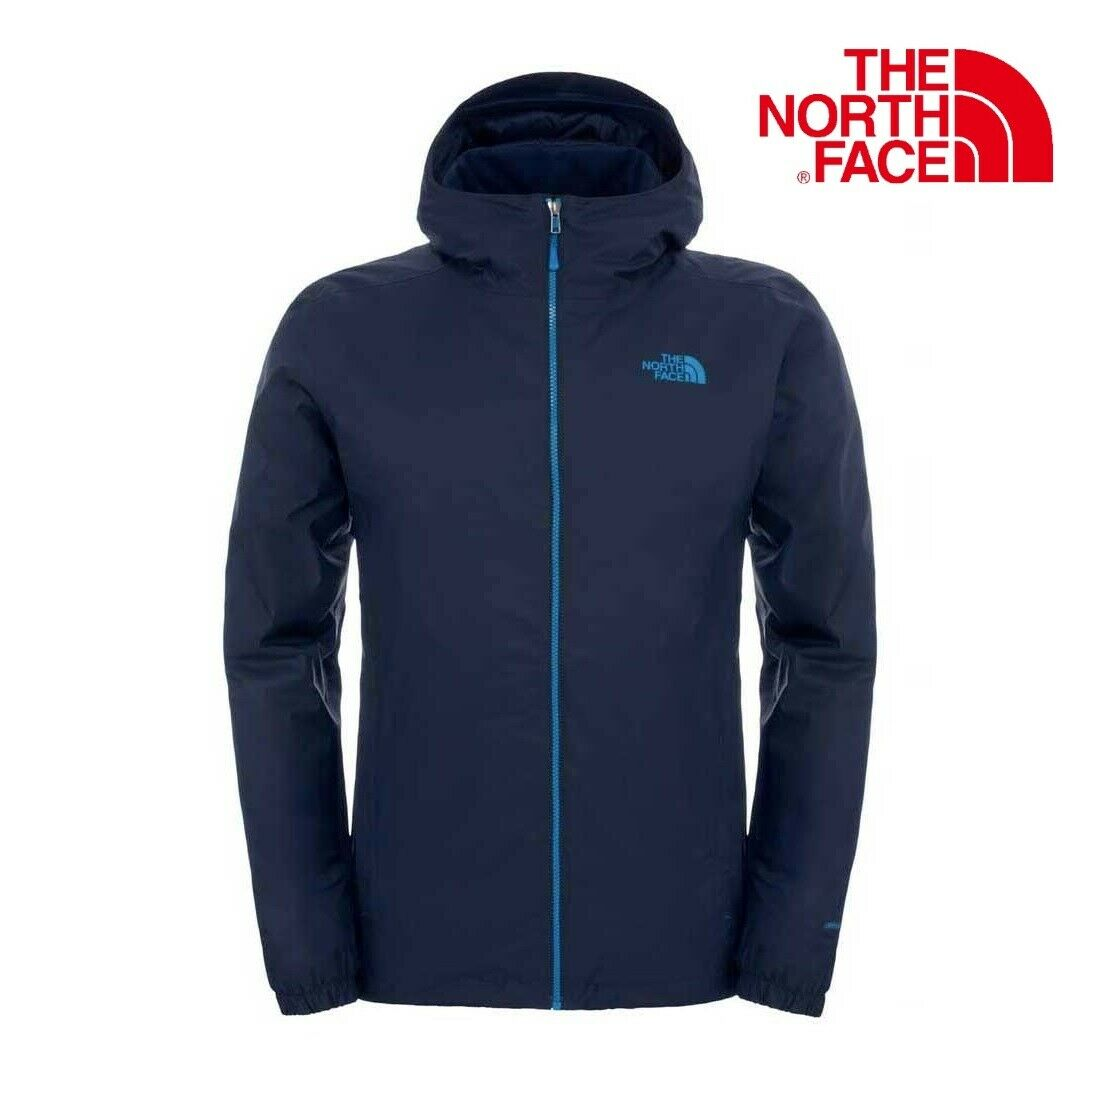 Giaccone uomo THE NORTH FACE quest insulated jacket trekre blu T0C302